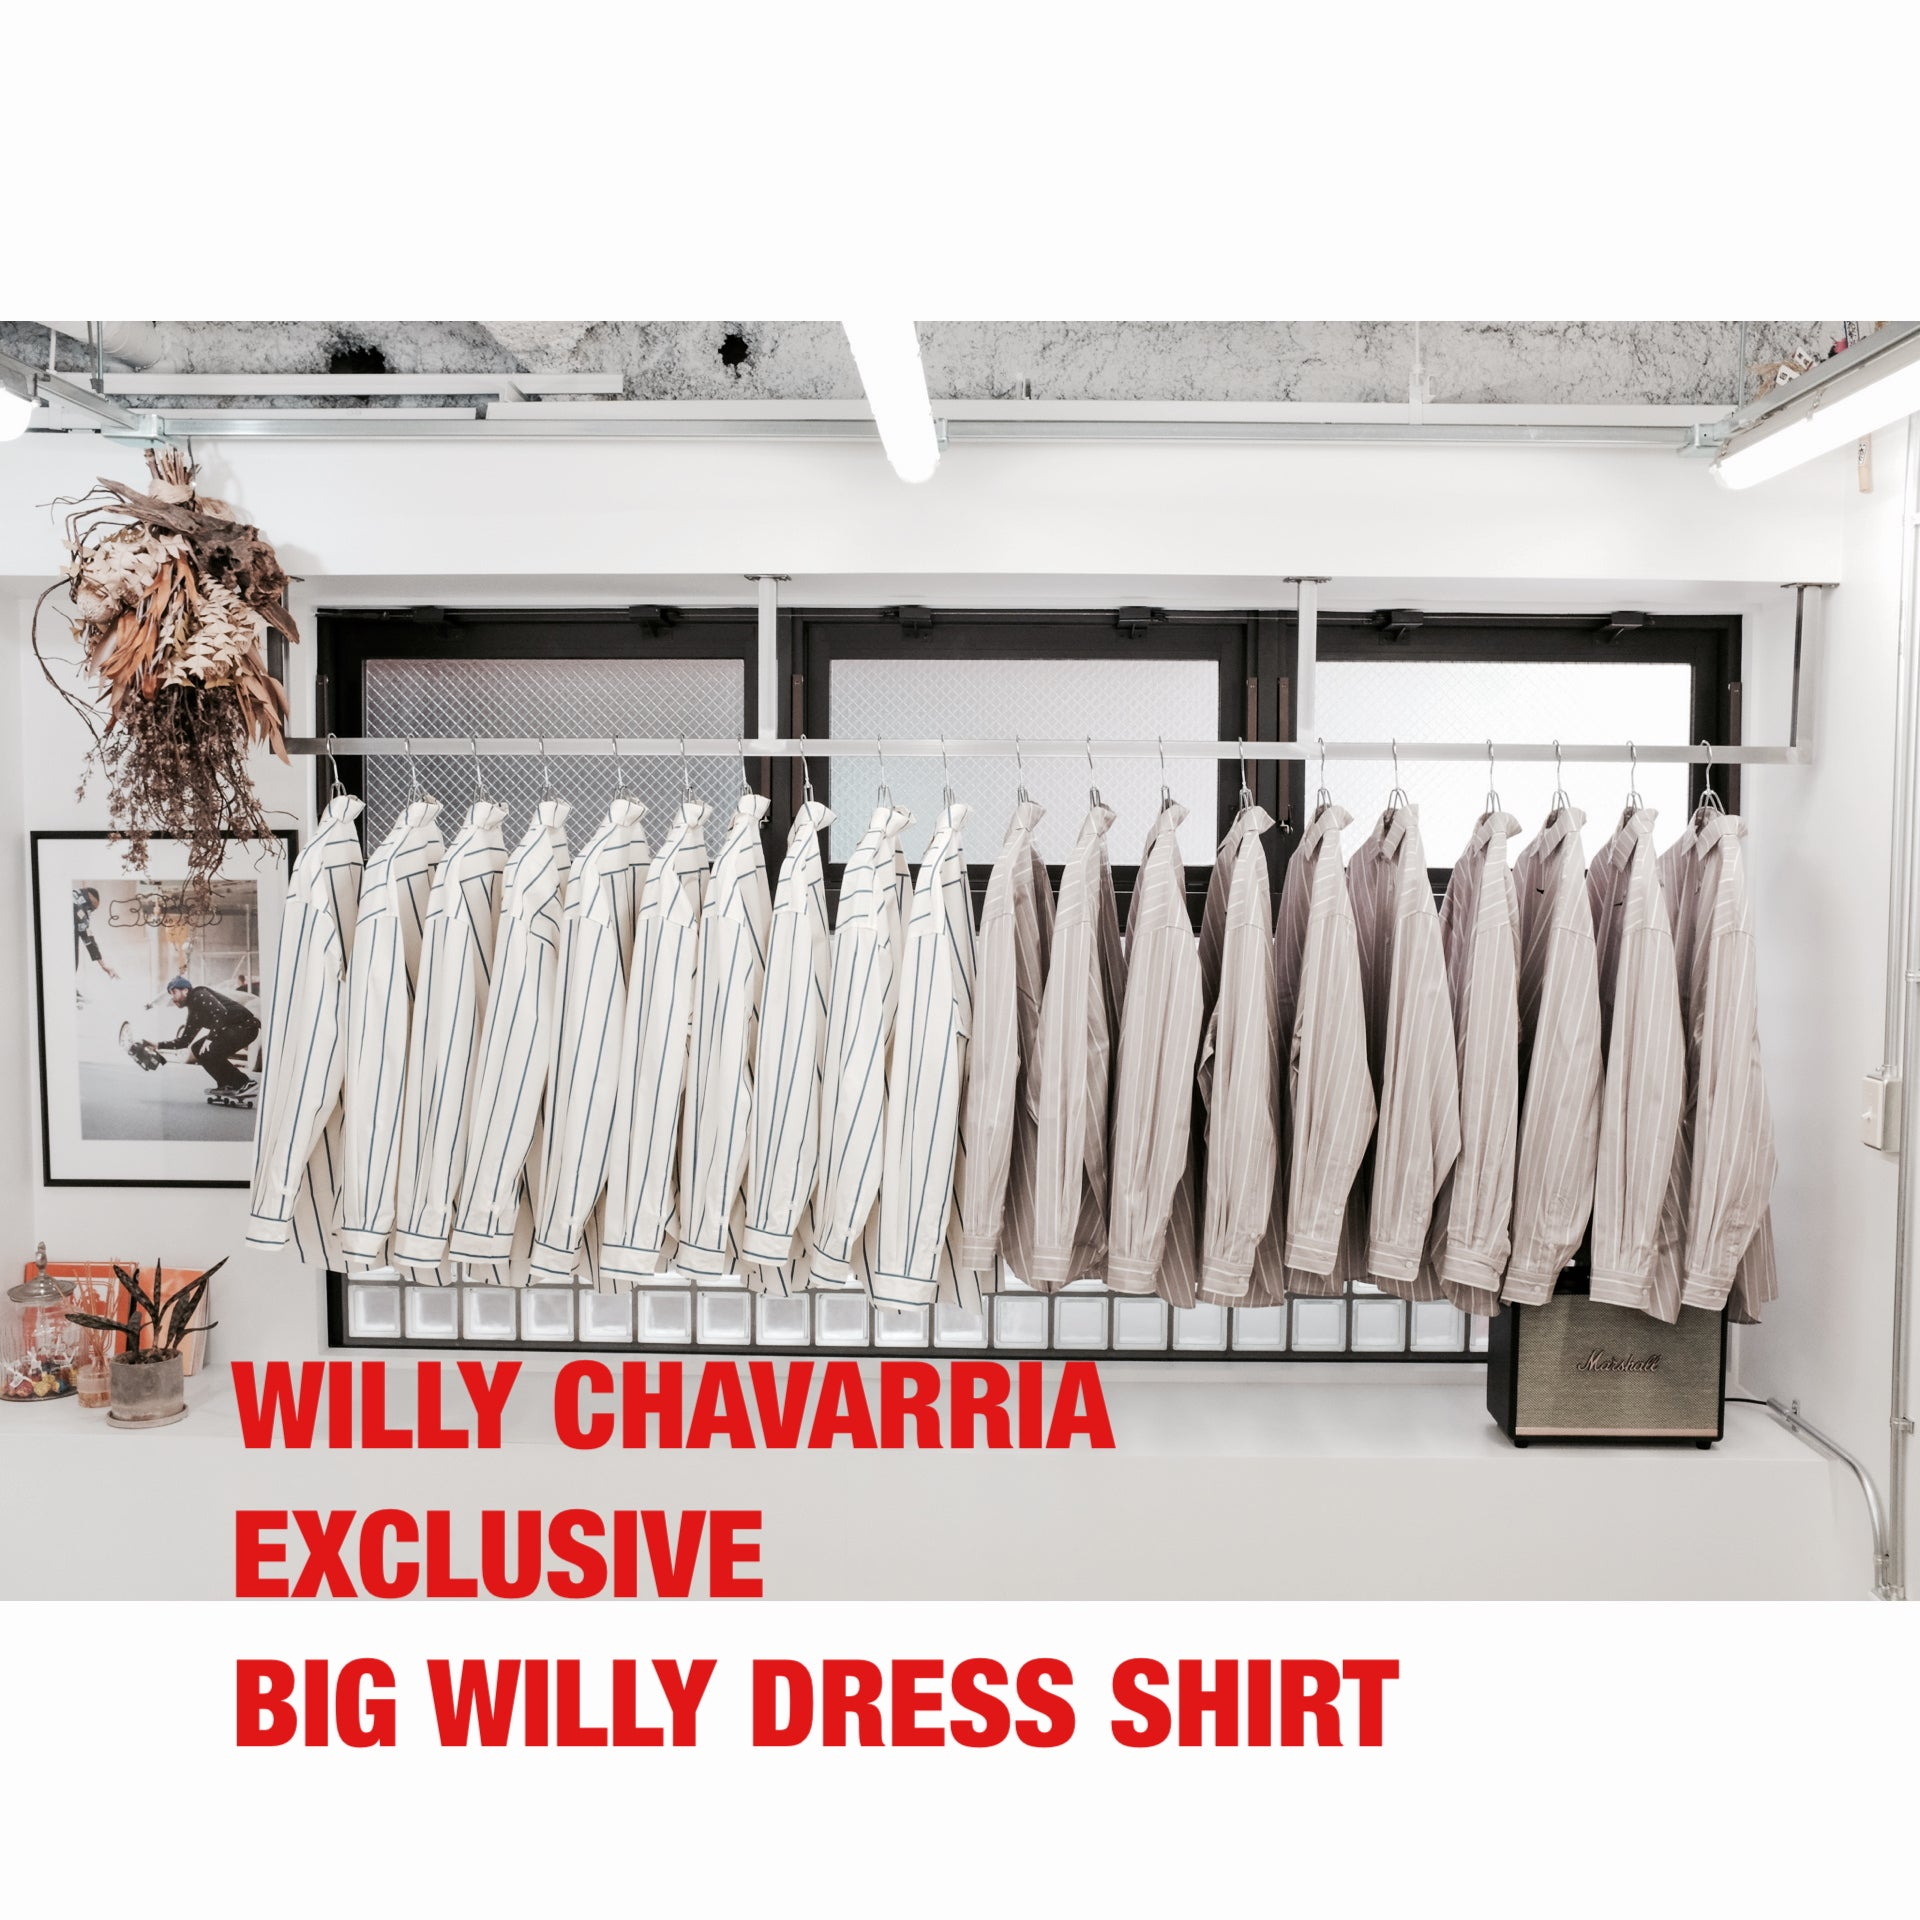 WILLY CHAVARRIA EXCLUSIVE BIG WILLY DRESS SHIRT